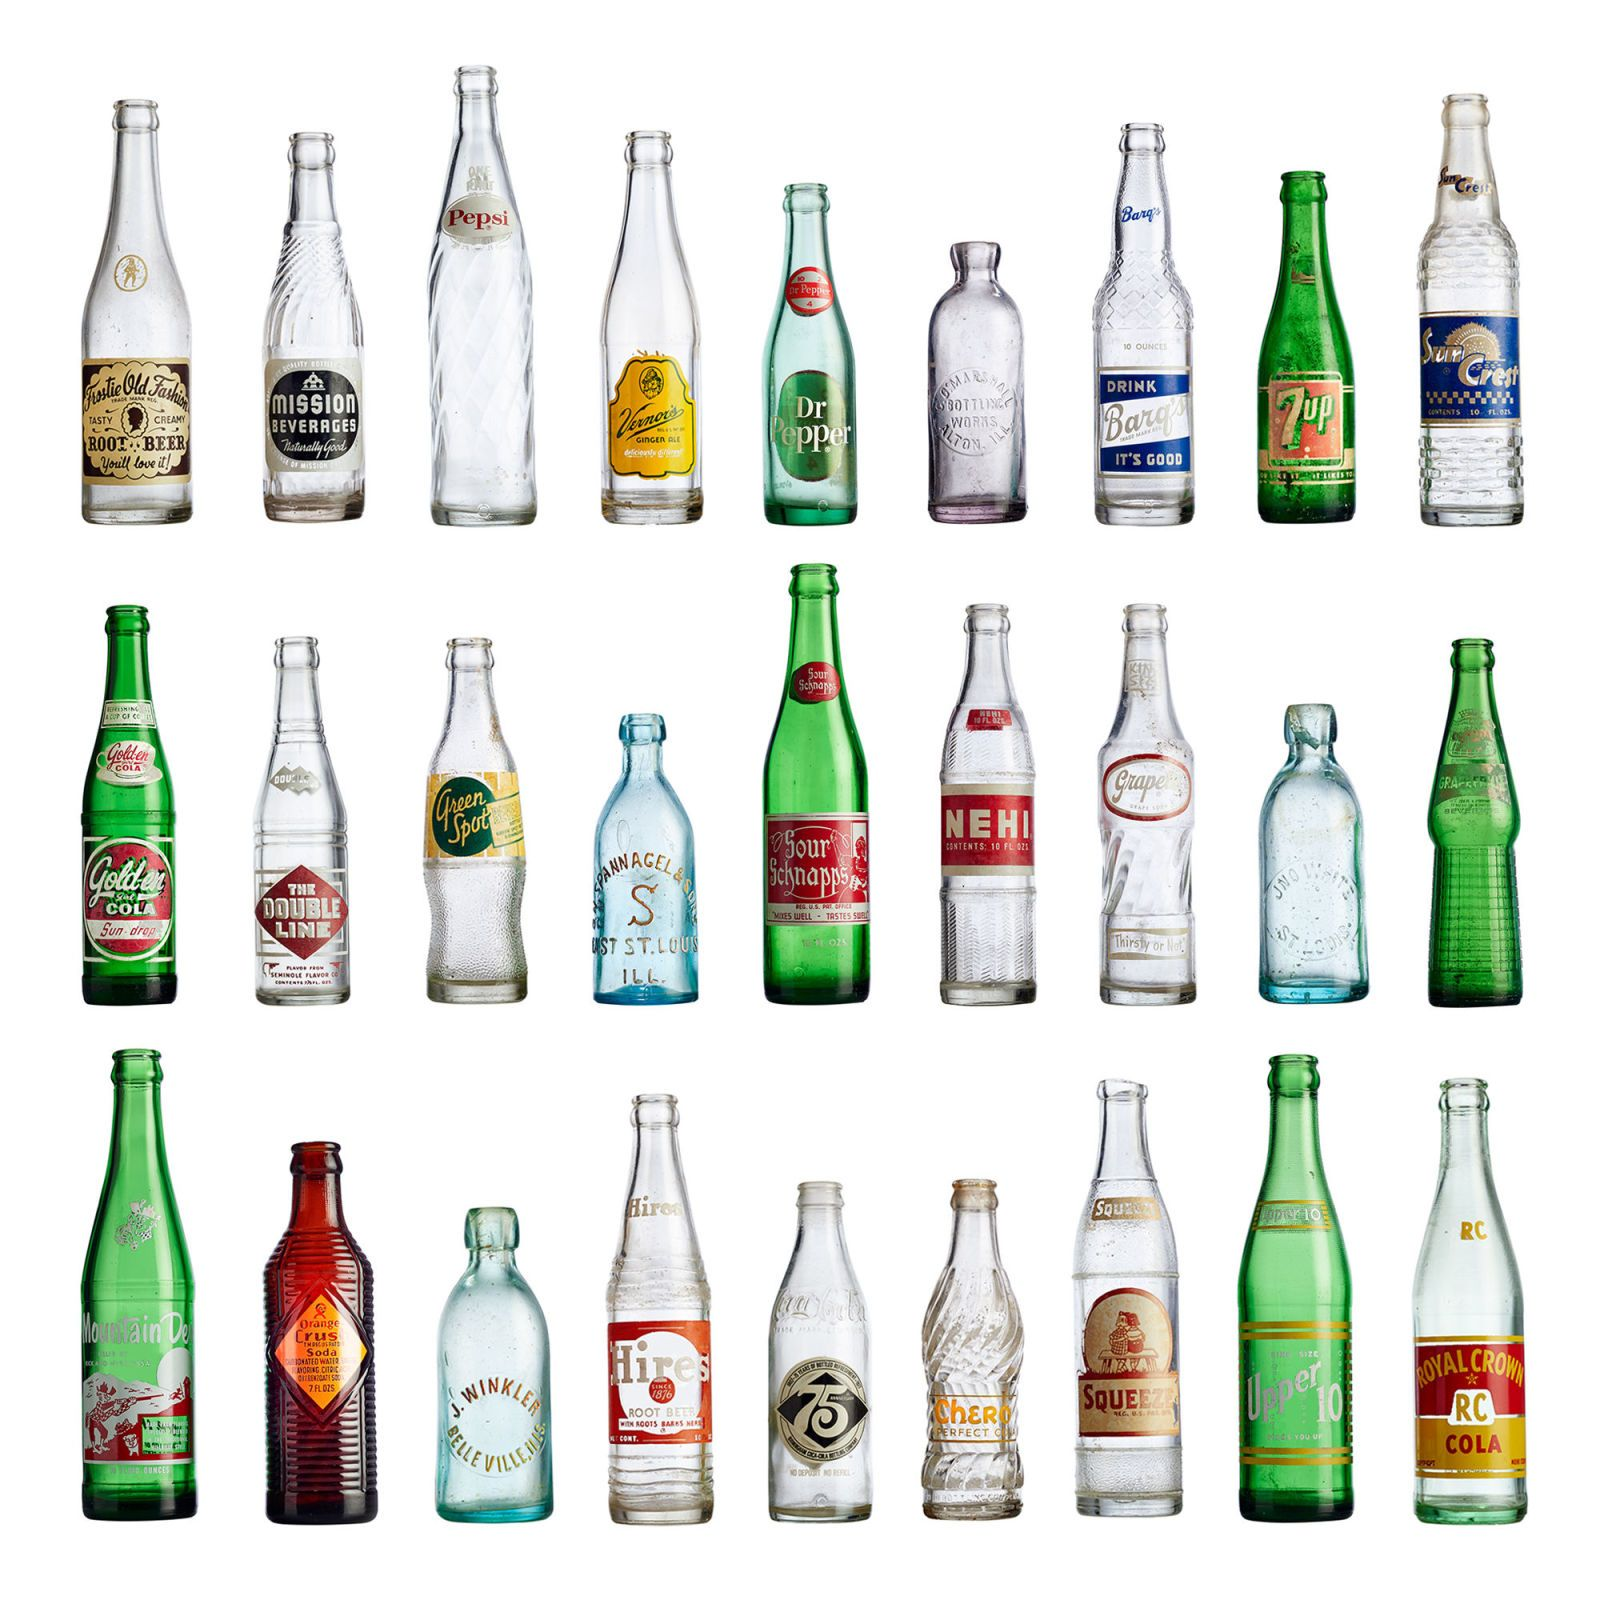 antique 7up bottles by year